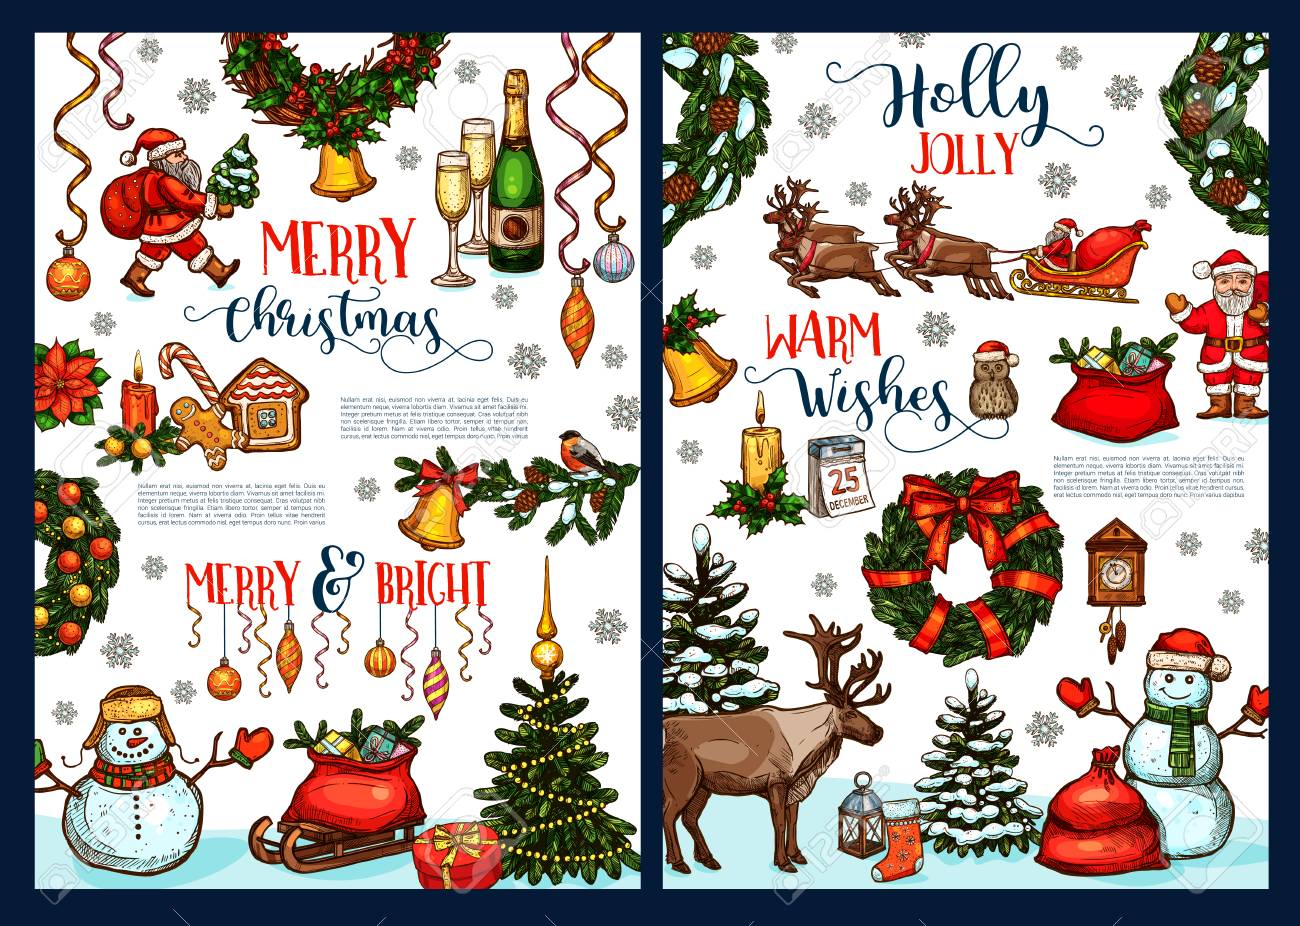 Merry Christmas Greeting Card Sketch Design Of Xmas Wishes For ...